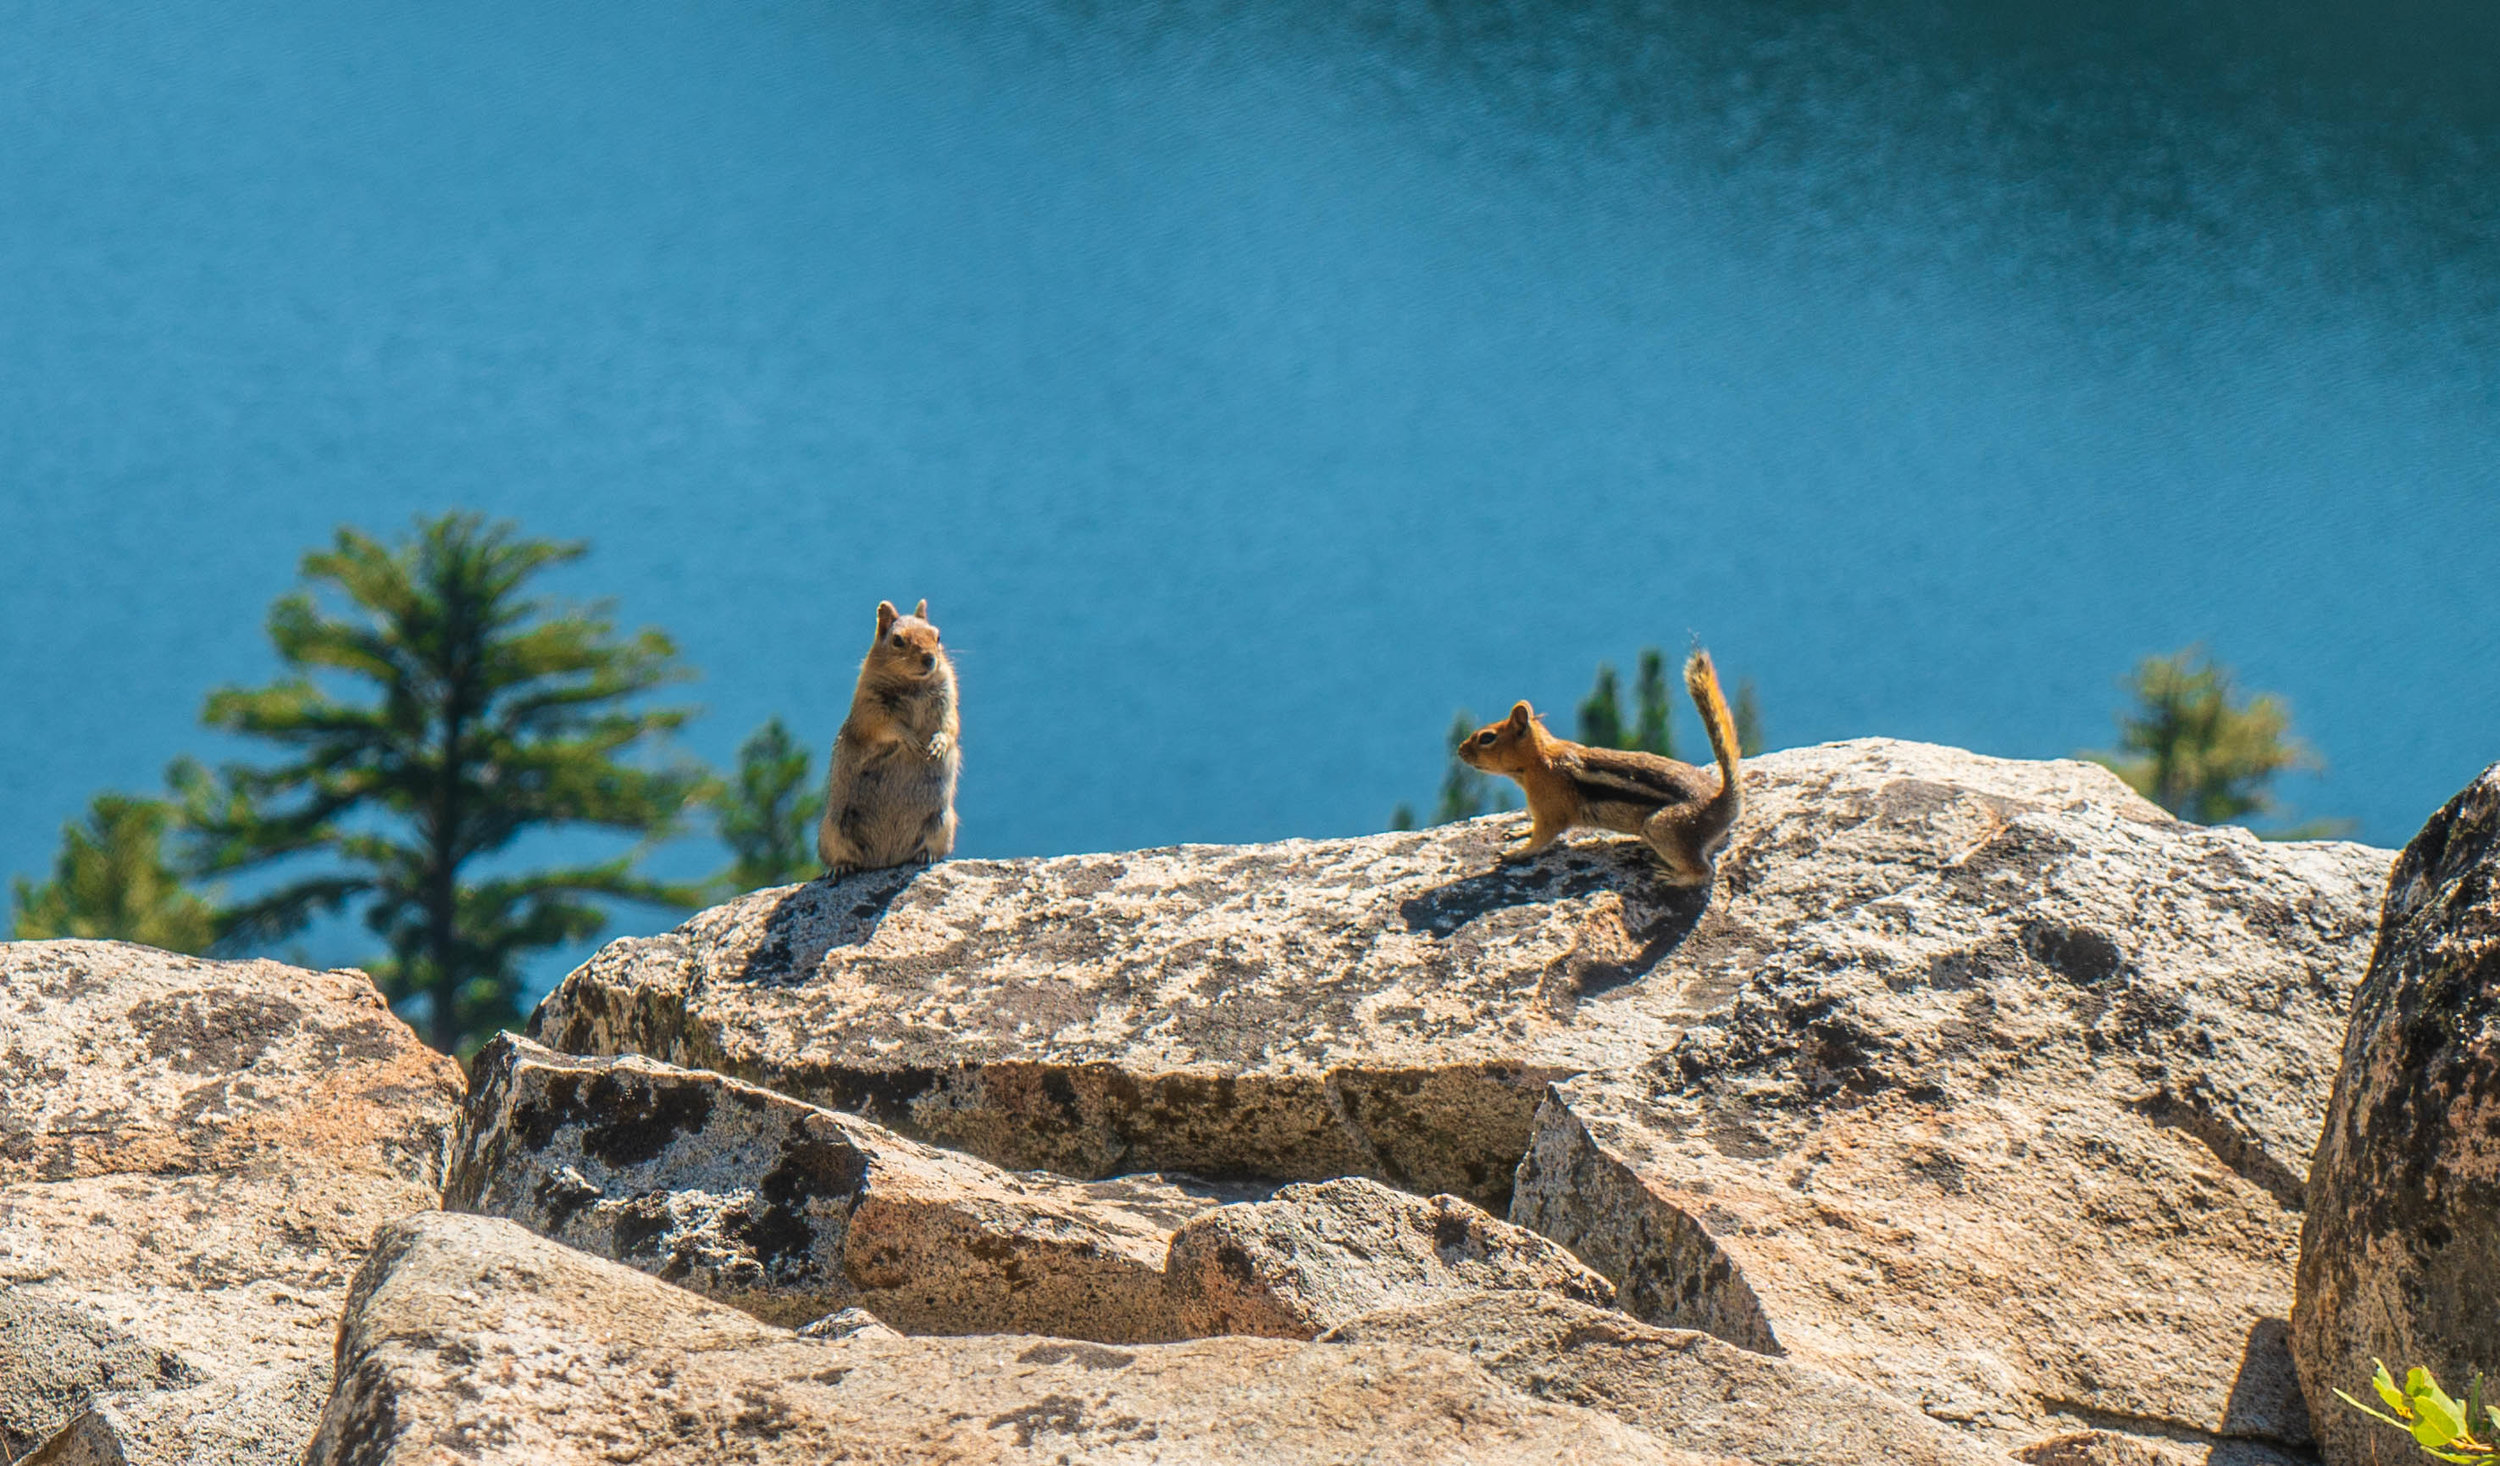 Chipmunks!